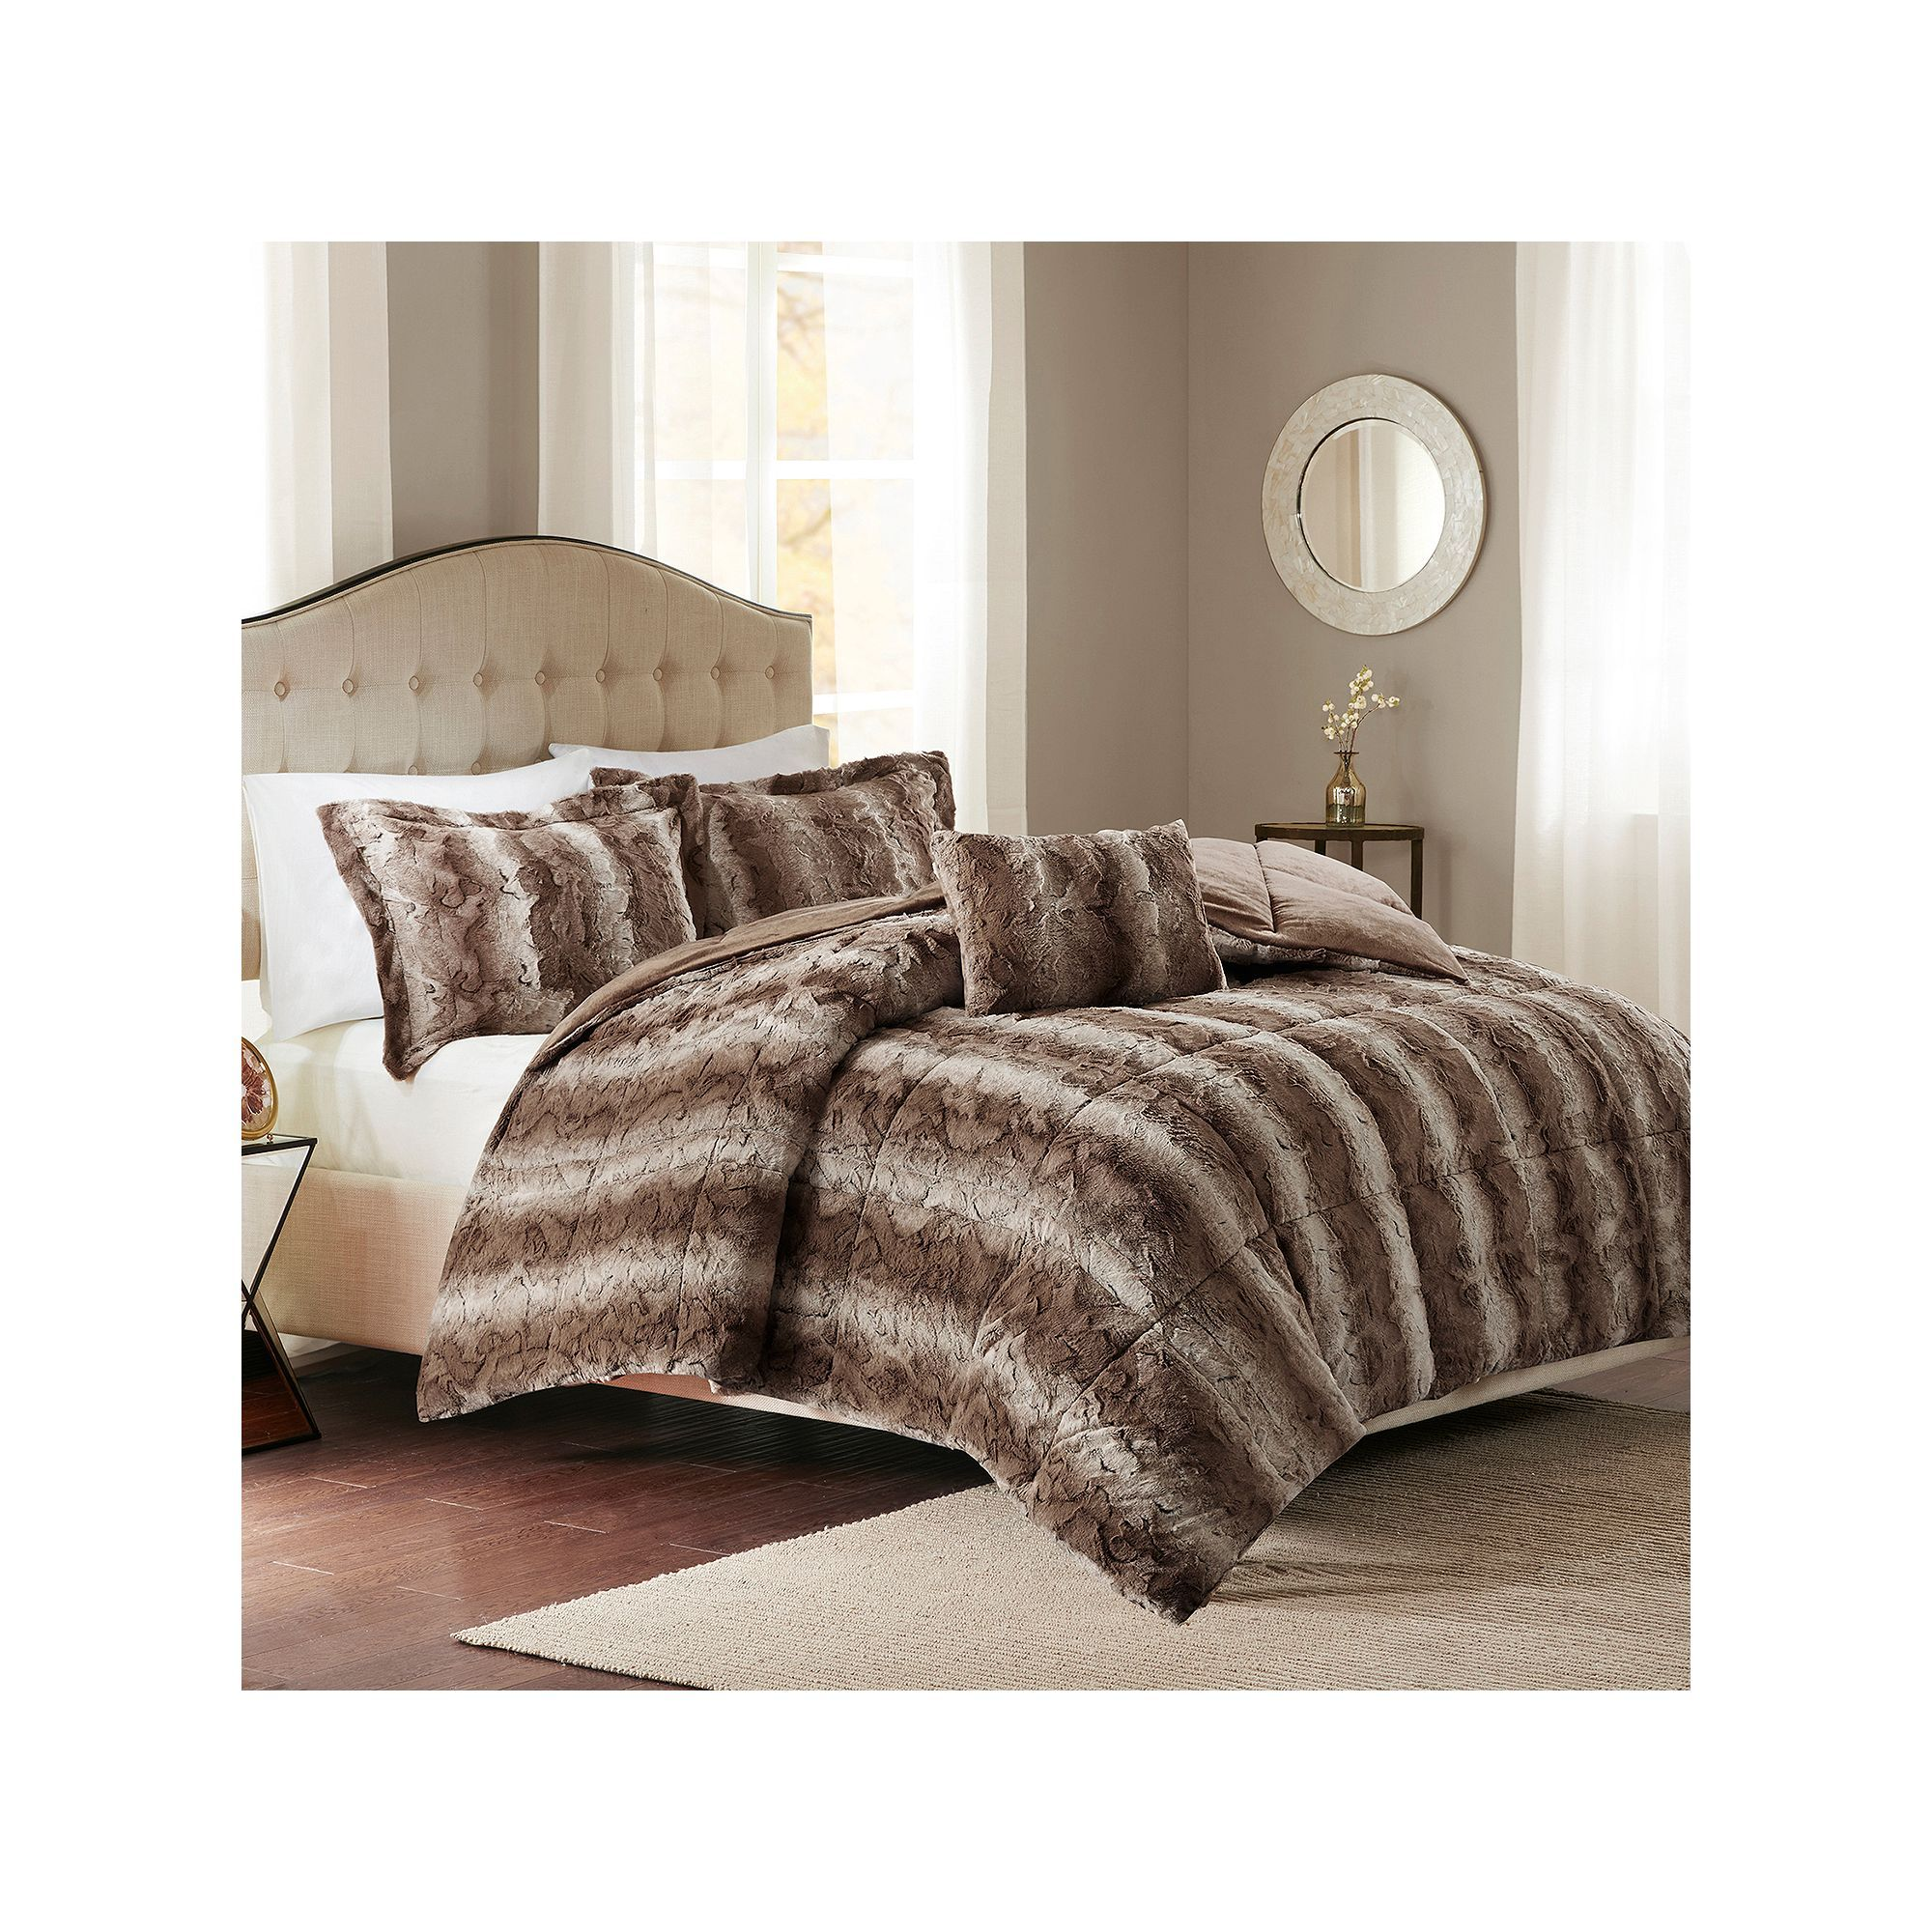 throwsfaux more green com faux throw blanket bedding overstock clothing fur shopping overside online striped prescott bed pine canopy jewelry pin electronics comforter furniture